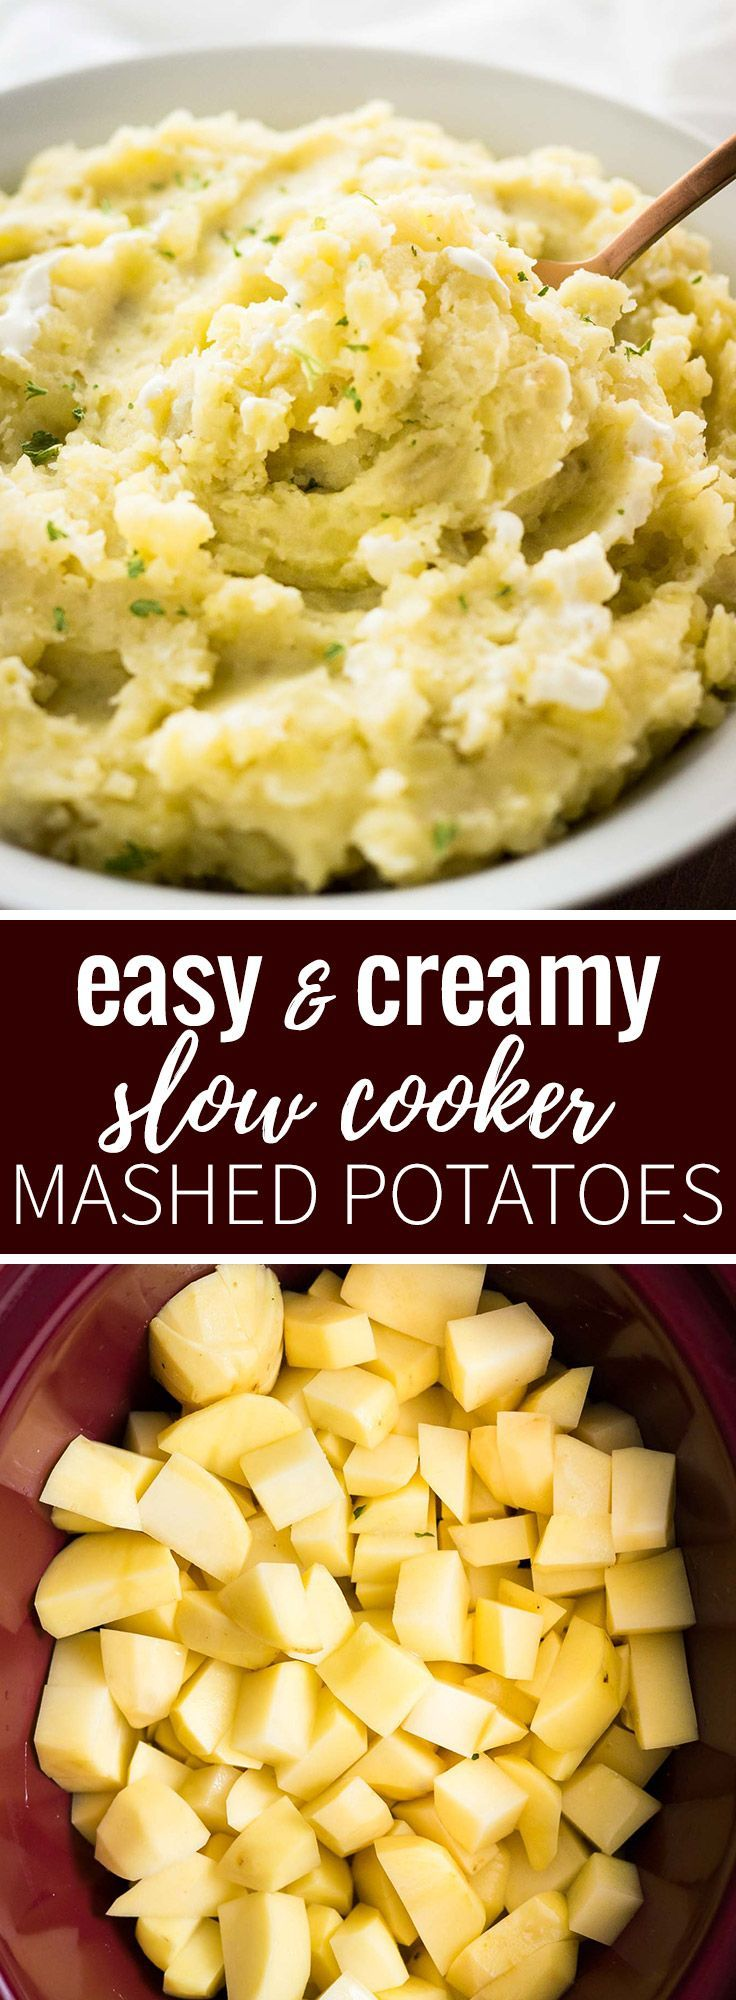 This Creamy Crock Pot Mashed Potatoes Recipe is SO easy and perfect to make ahead! A delicious slow cooker side dish for any meal throughout the fall and winter.